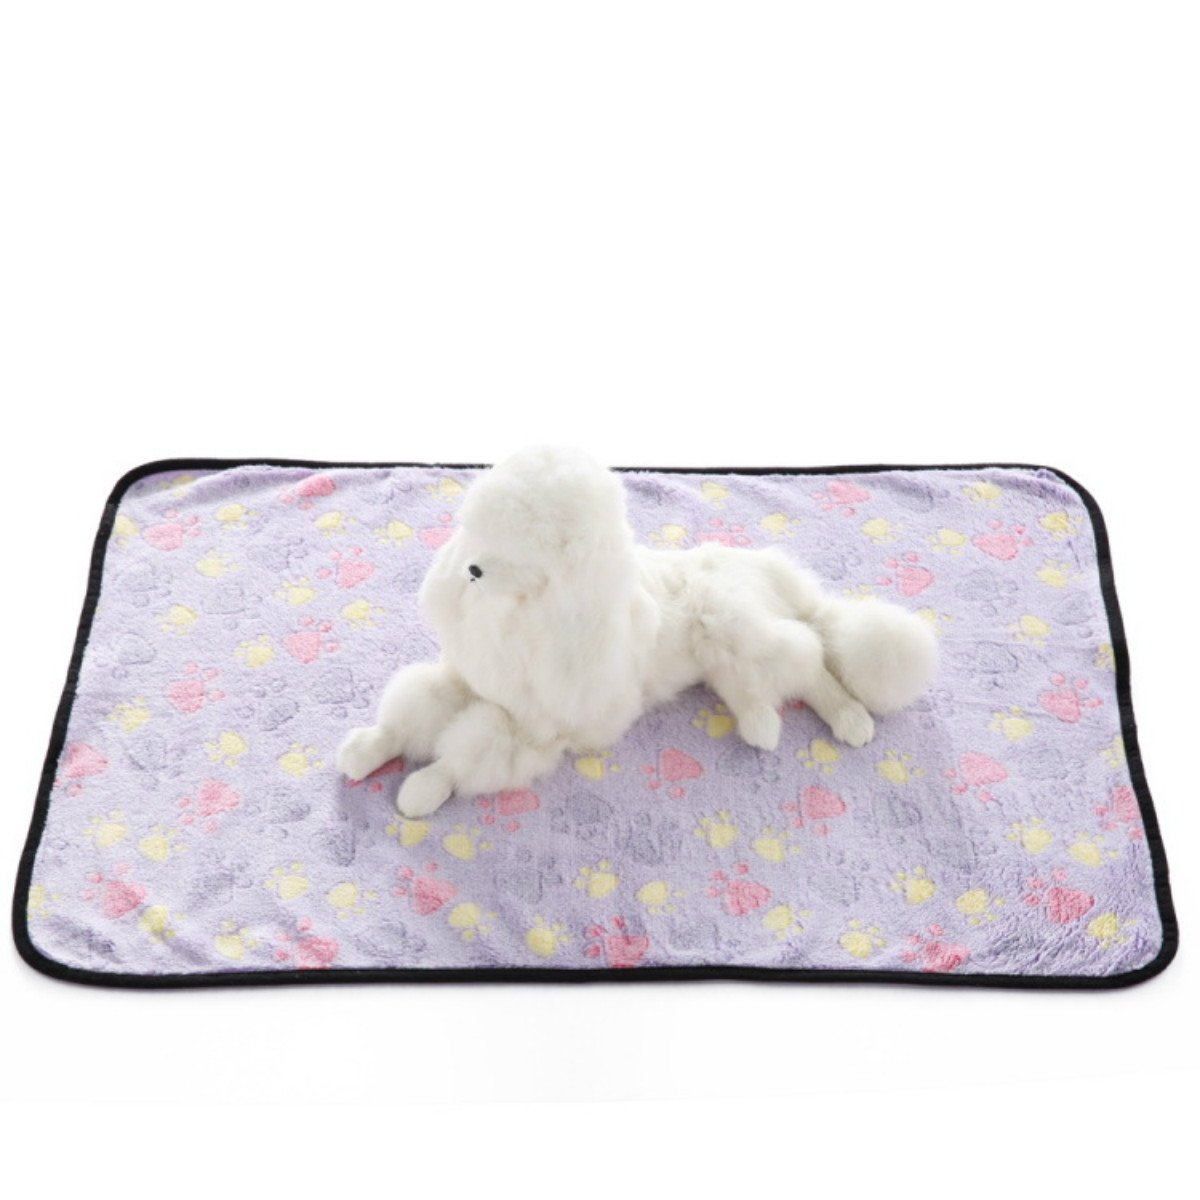 PetBoBo Pet Dog Cat Puppy Blanket Warm Dog Cat Warm Blankets Pet Sleep Mat Pad Bed Cover, Soft Blanket for Pet, Super Soft Micro Plush Pet Blanket Cushion Mat for Animals by PetBoBo (Image #4)